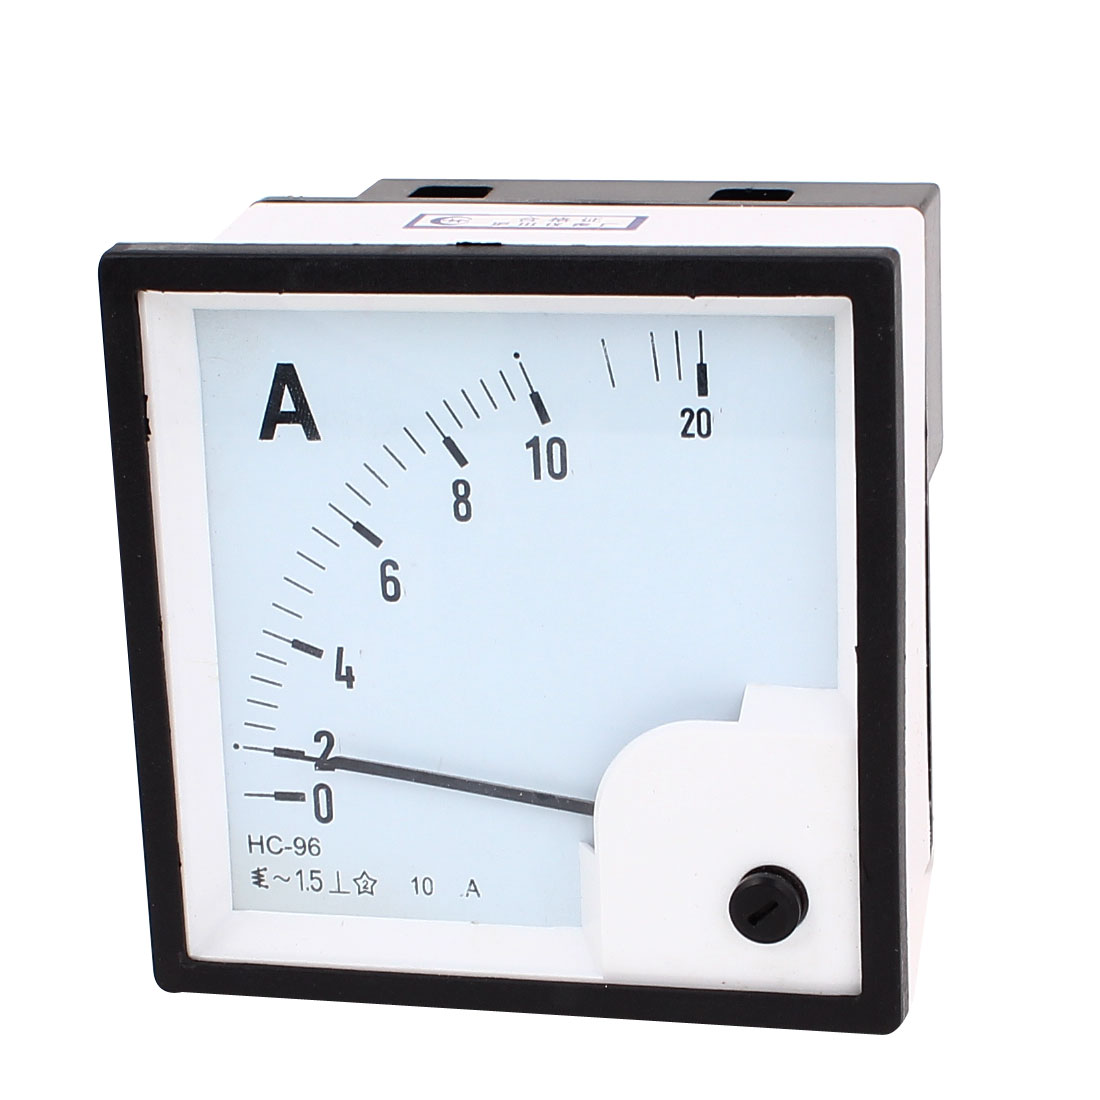 Unique Bargains Plastic Panel Mount AC 0-10A Current Ampere Meter Analogue Analog Class 1.5